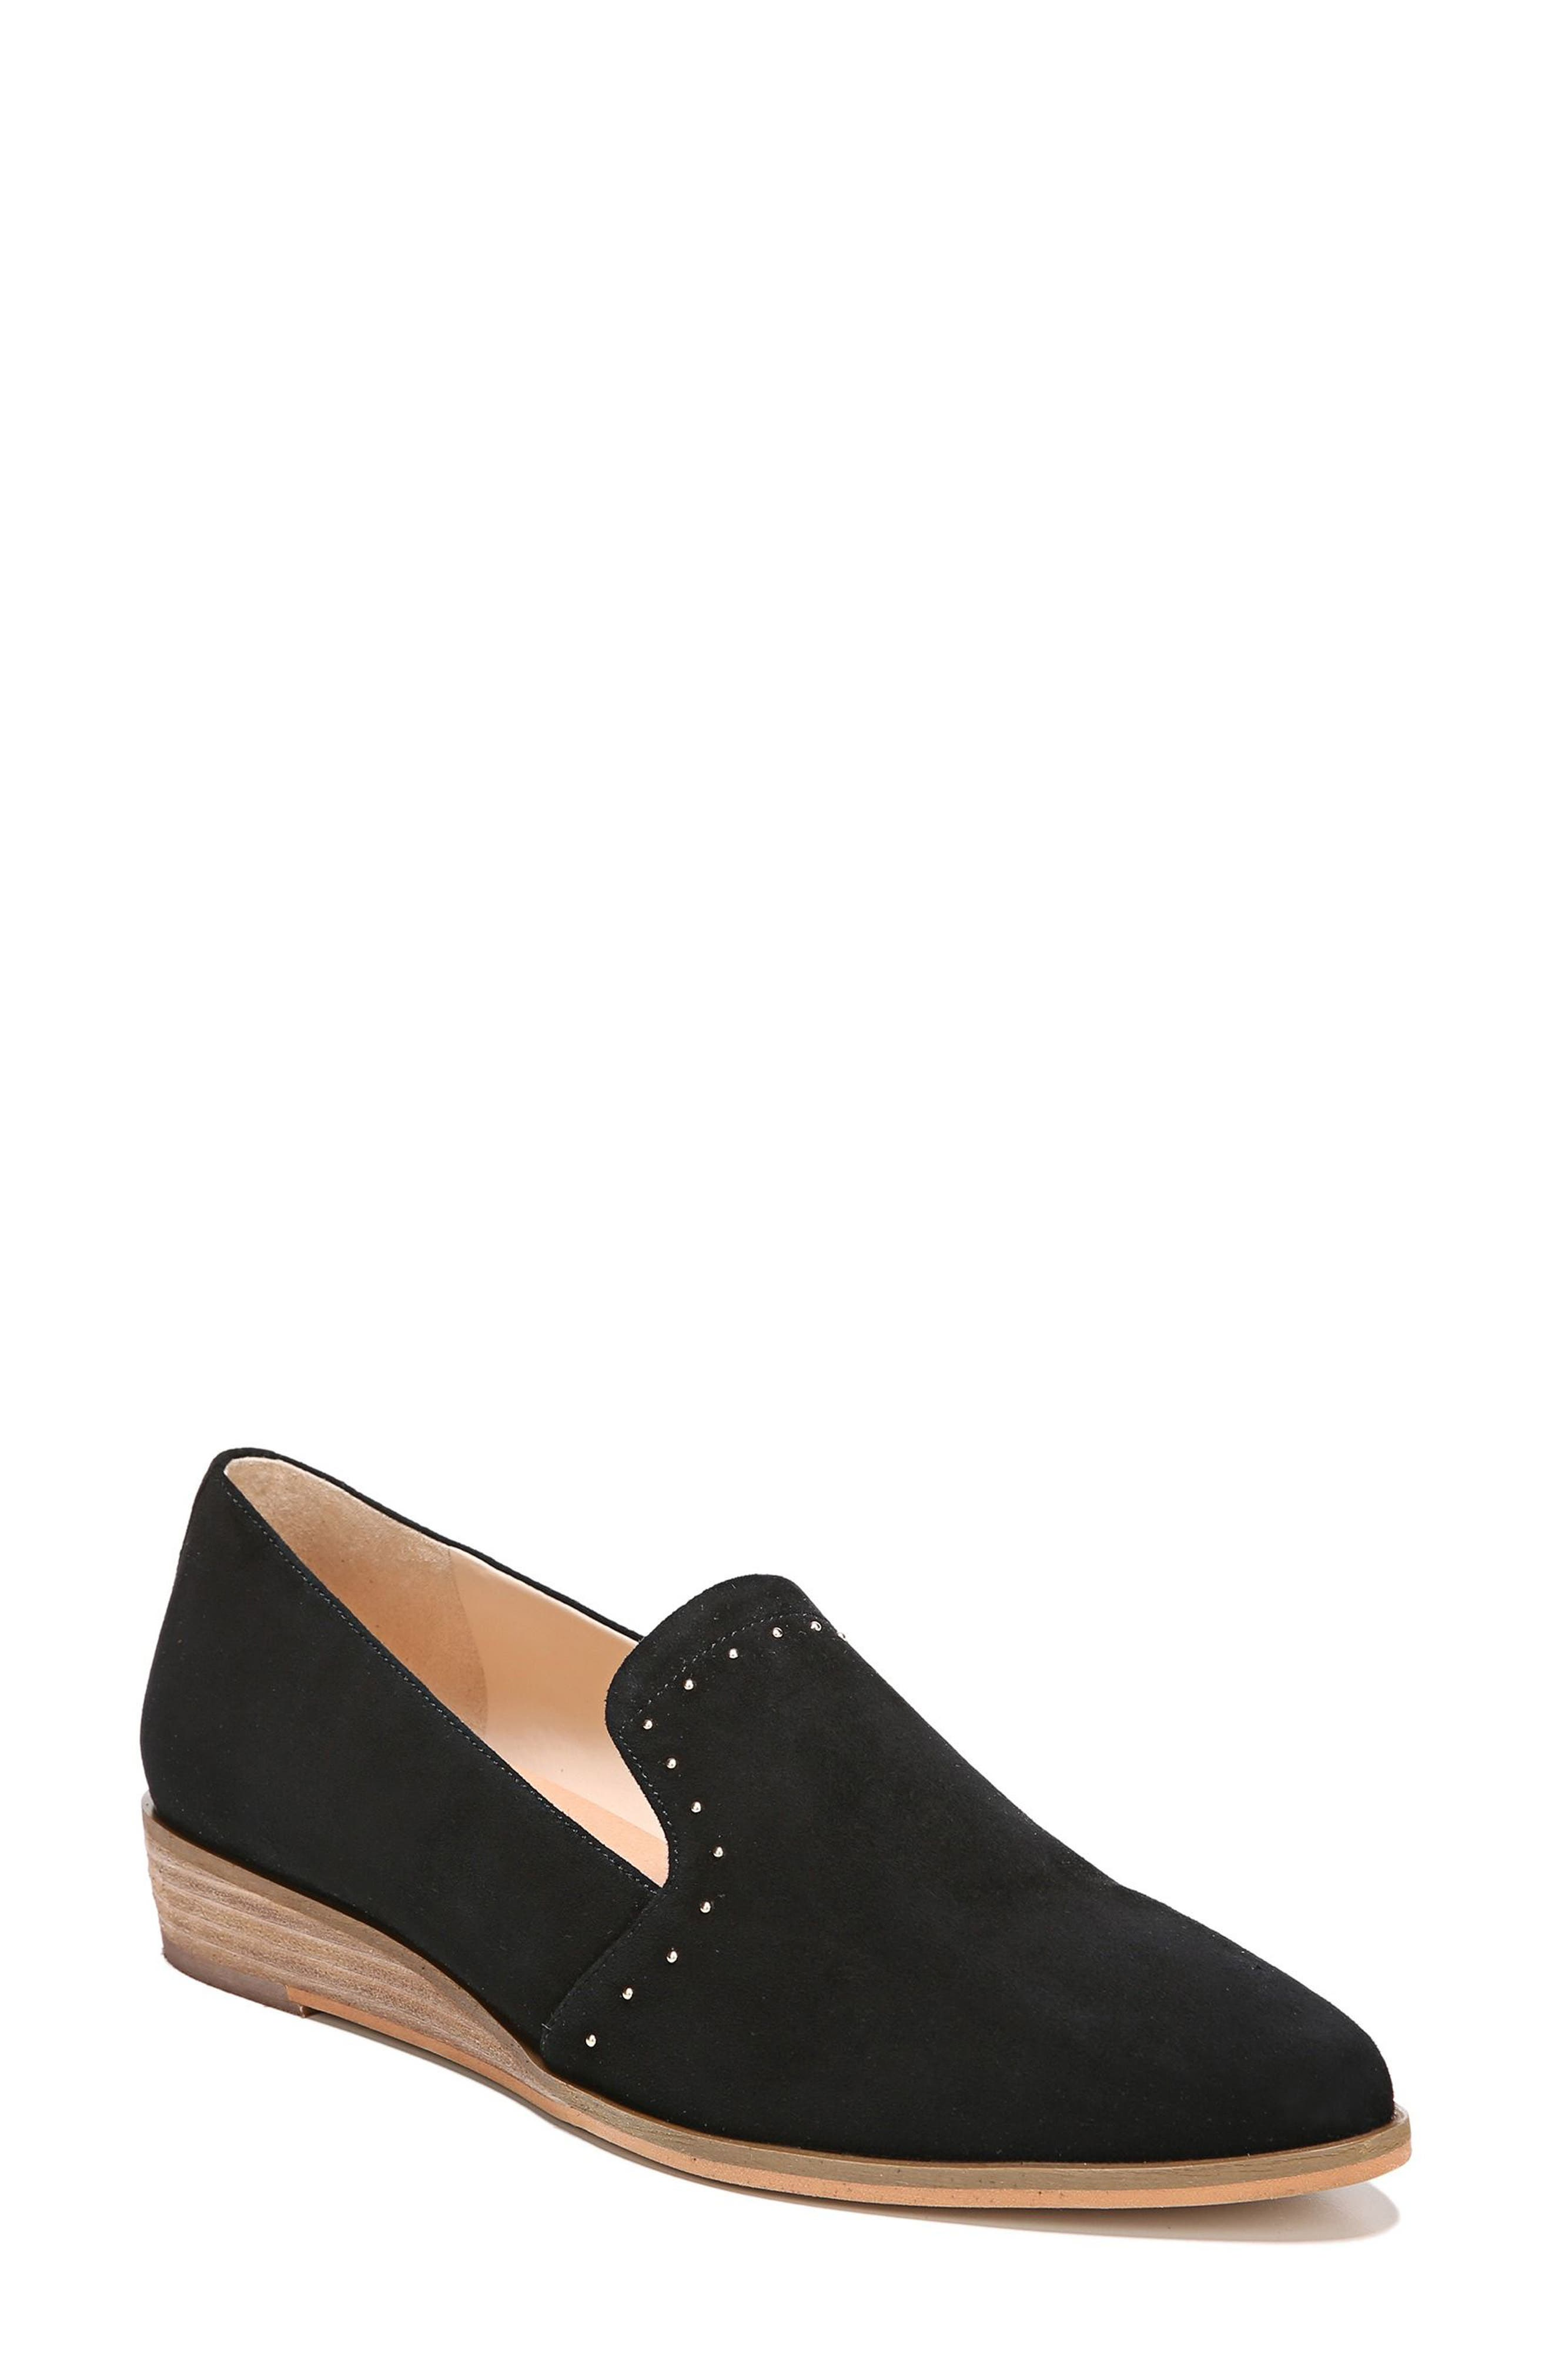 Keane Loafer Wedge,                             Main thumbnail 1, color,                             Black Suede